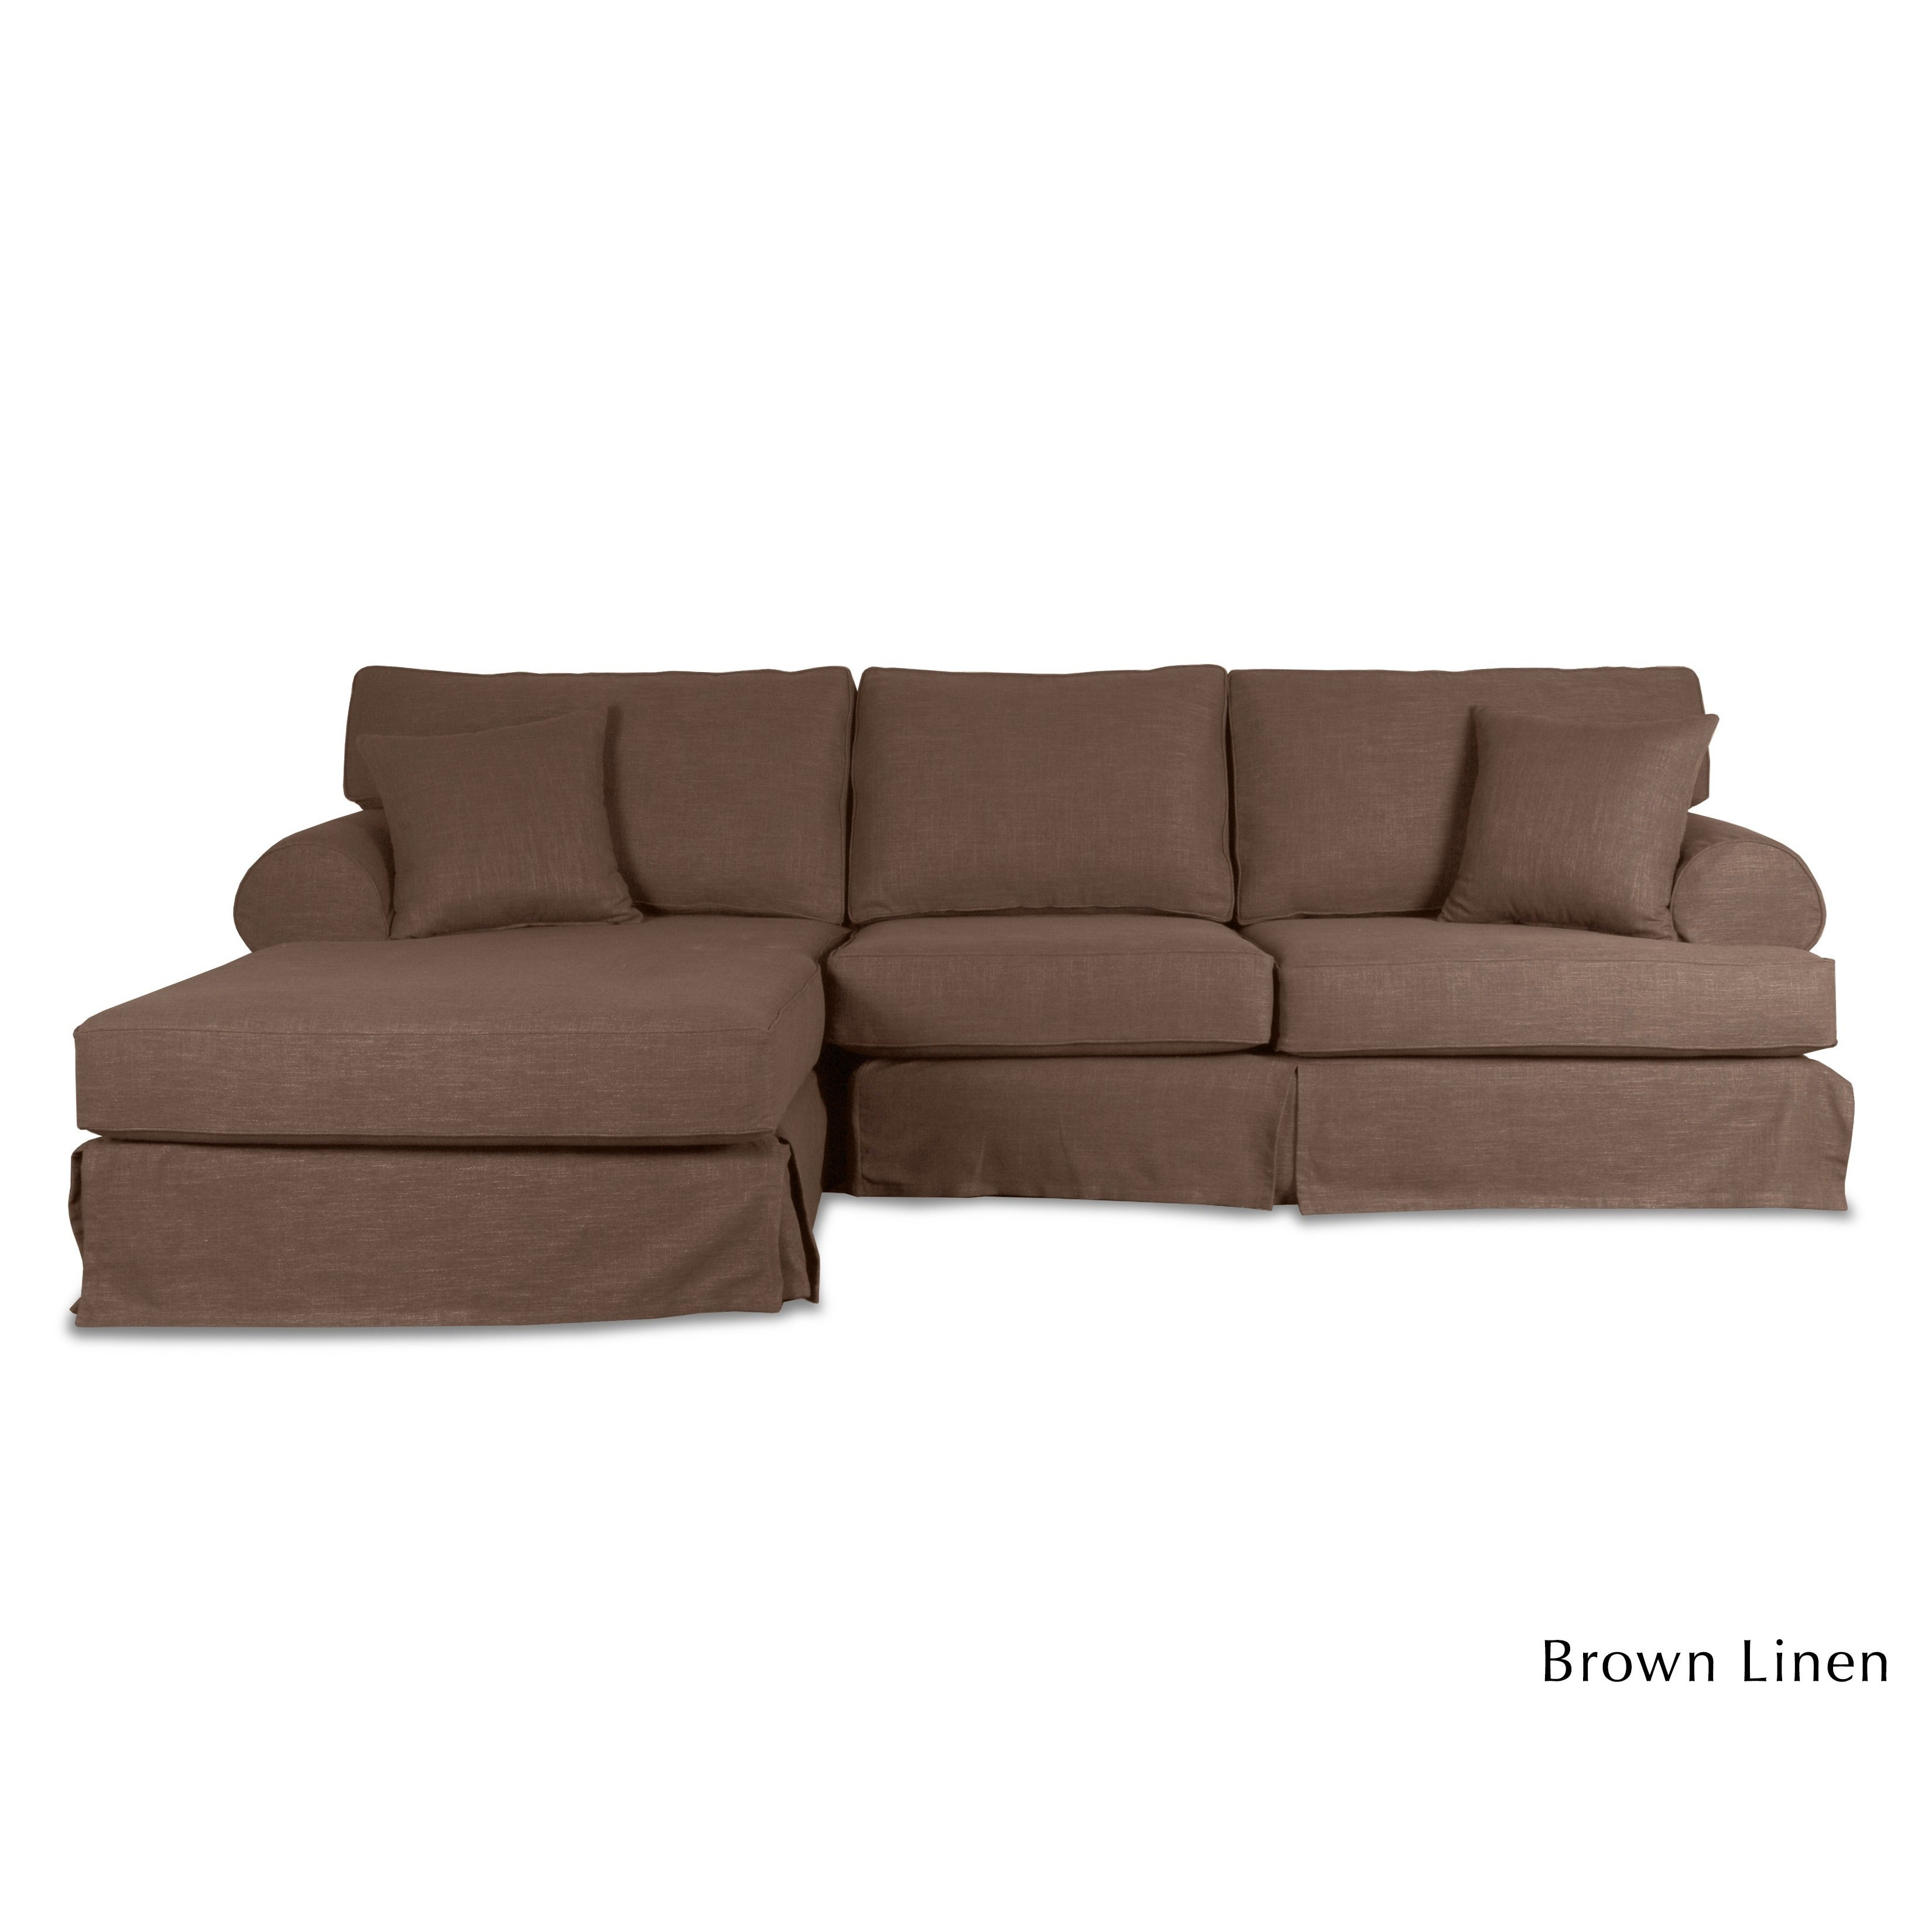 Collections Of Sectional Couch With Wide Chase